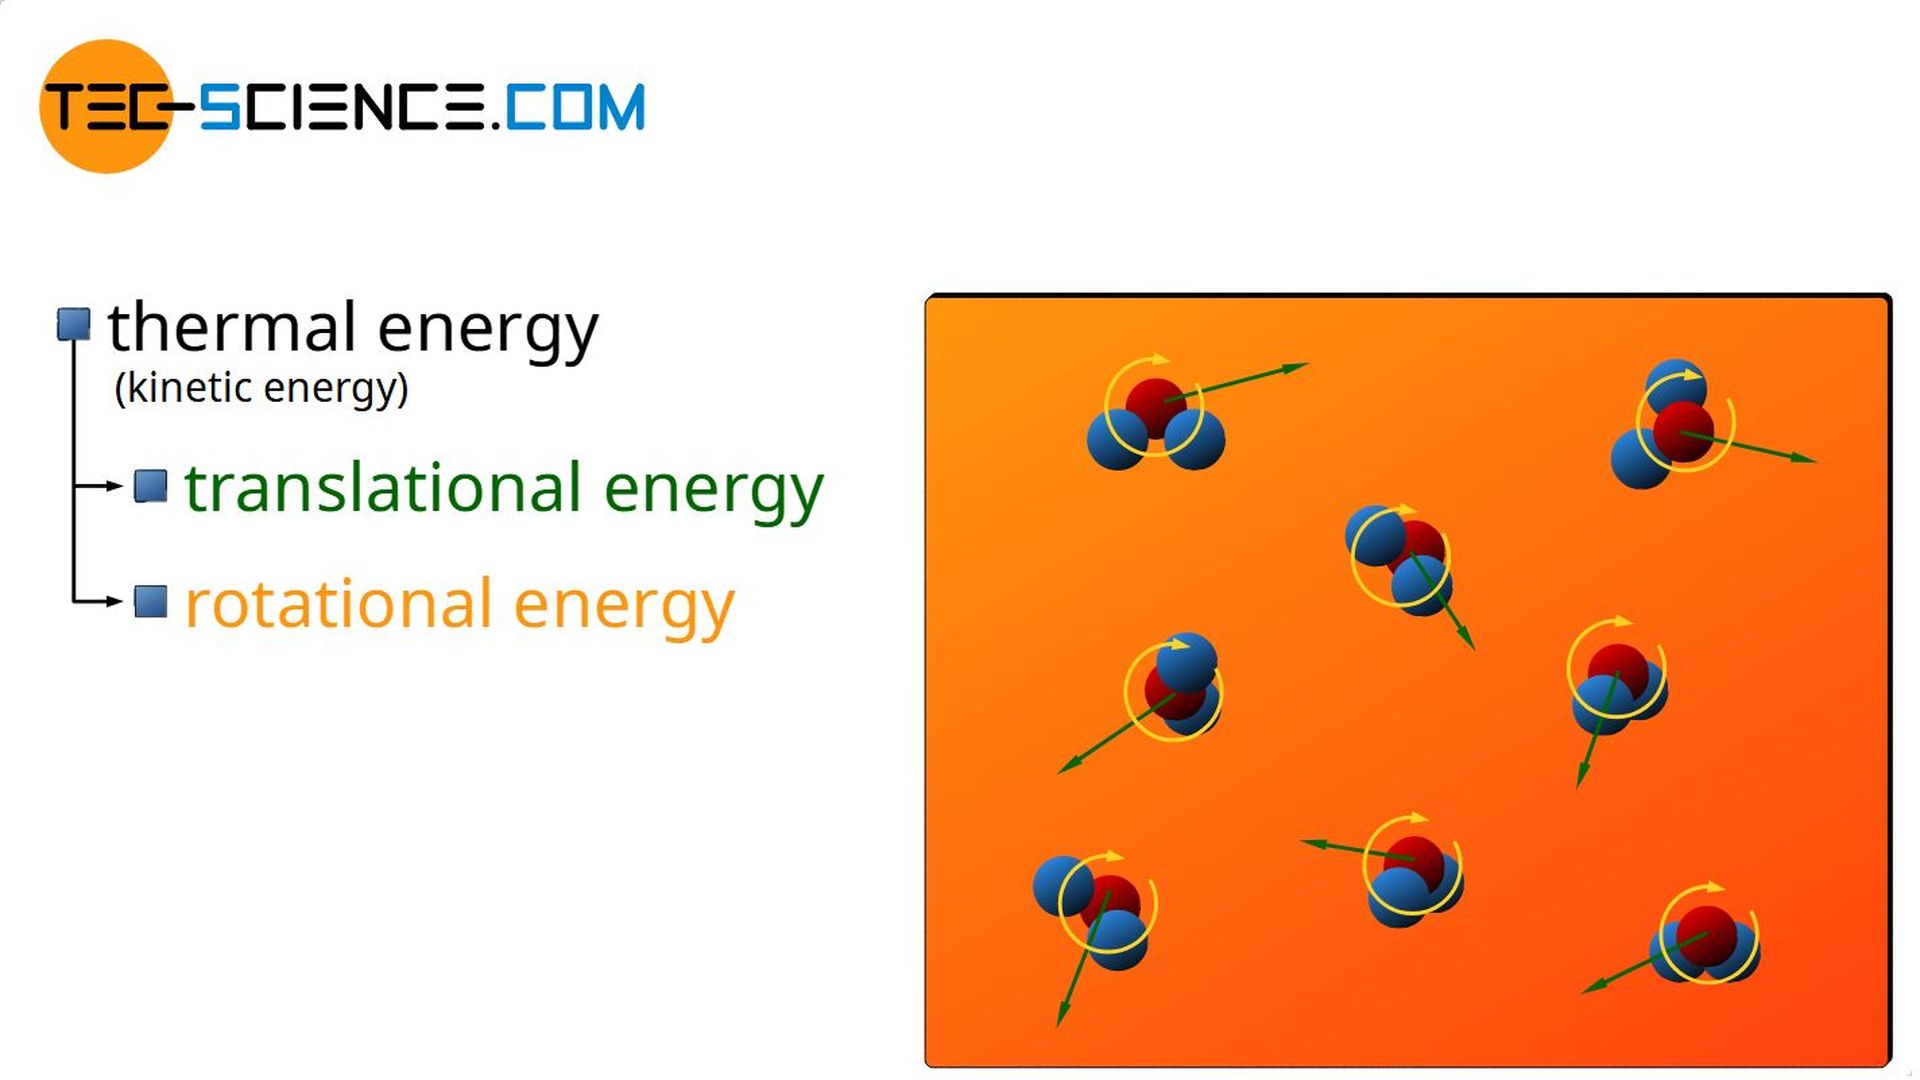 Thermal energy as part of the internal energy of a substance